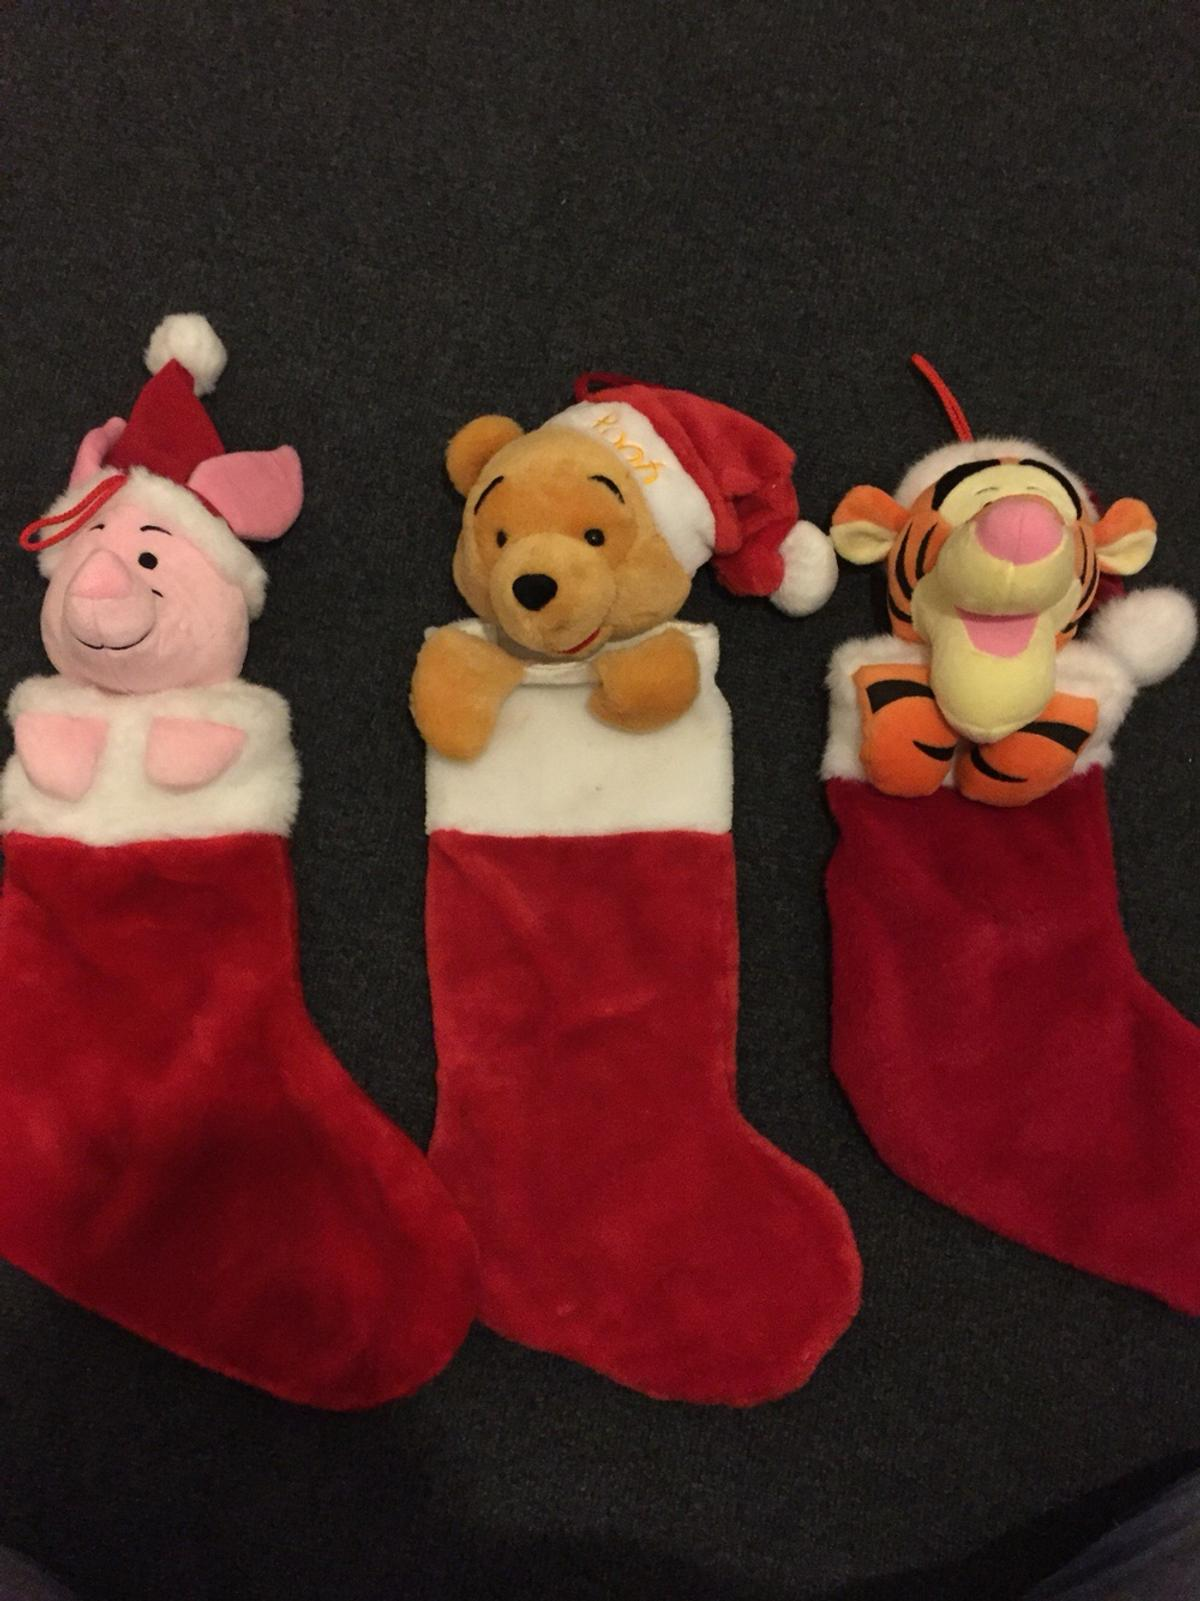 Tigger Christmas Stocking.Disney Christmas Stockings In Ng19 Pleasley For 10 00 For